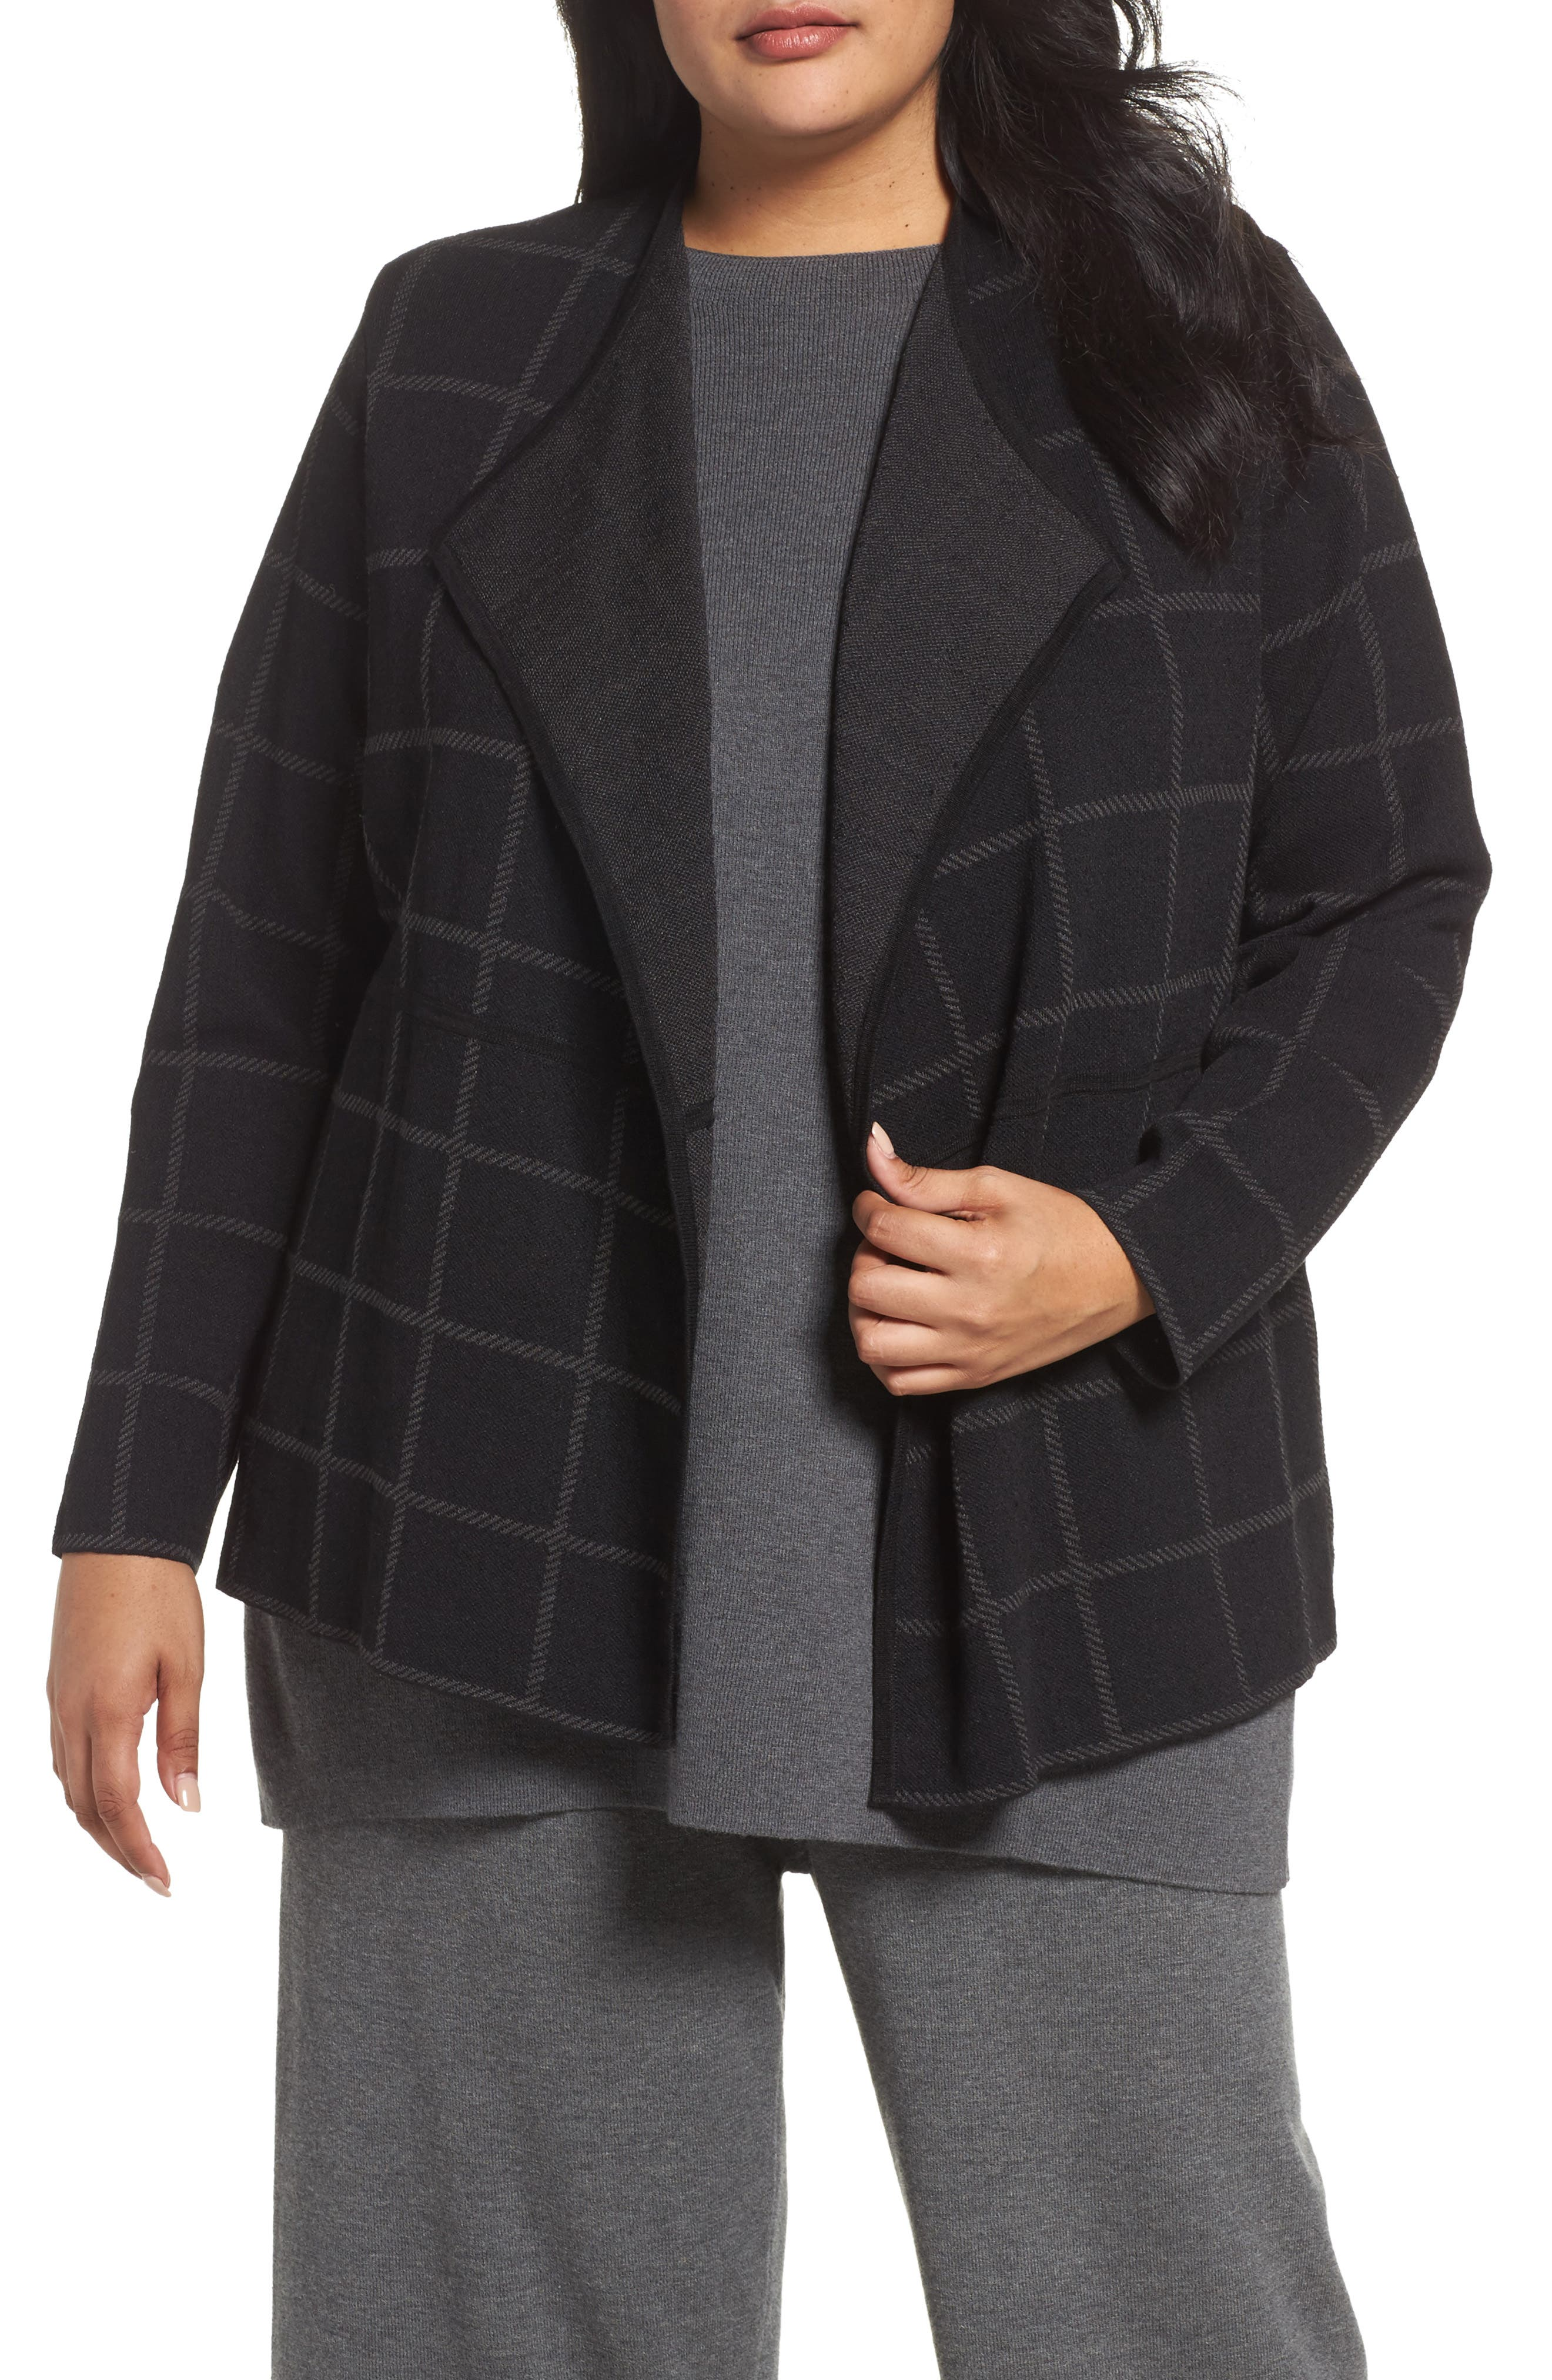 Angle Front Cardigan,                         Main,                         color, Charcoal/ Black